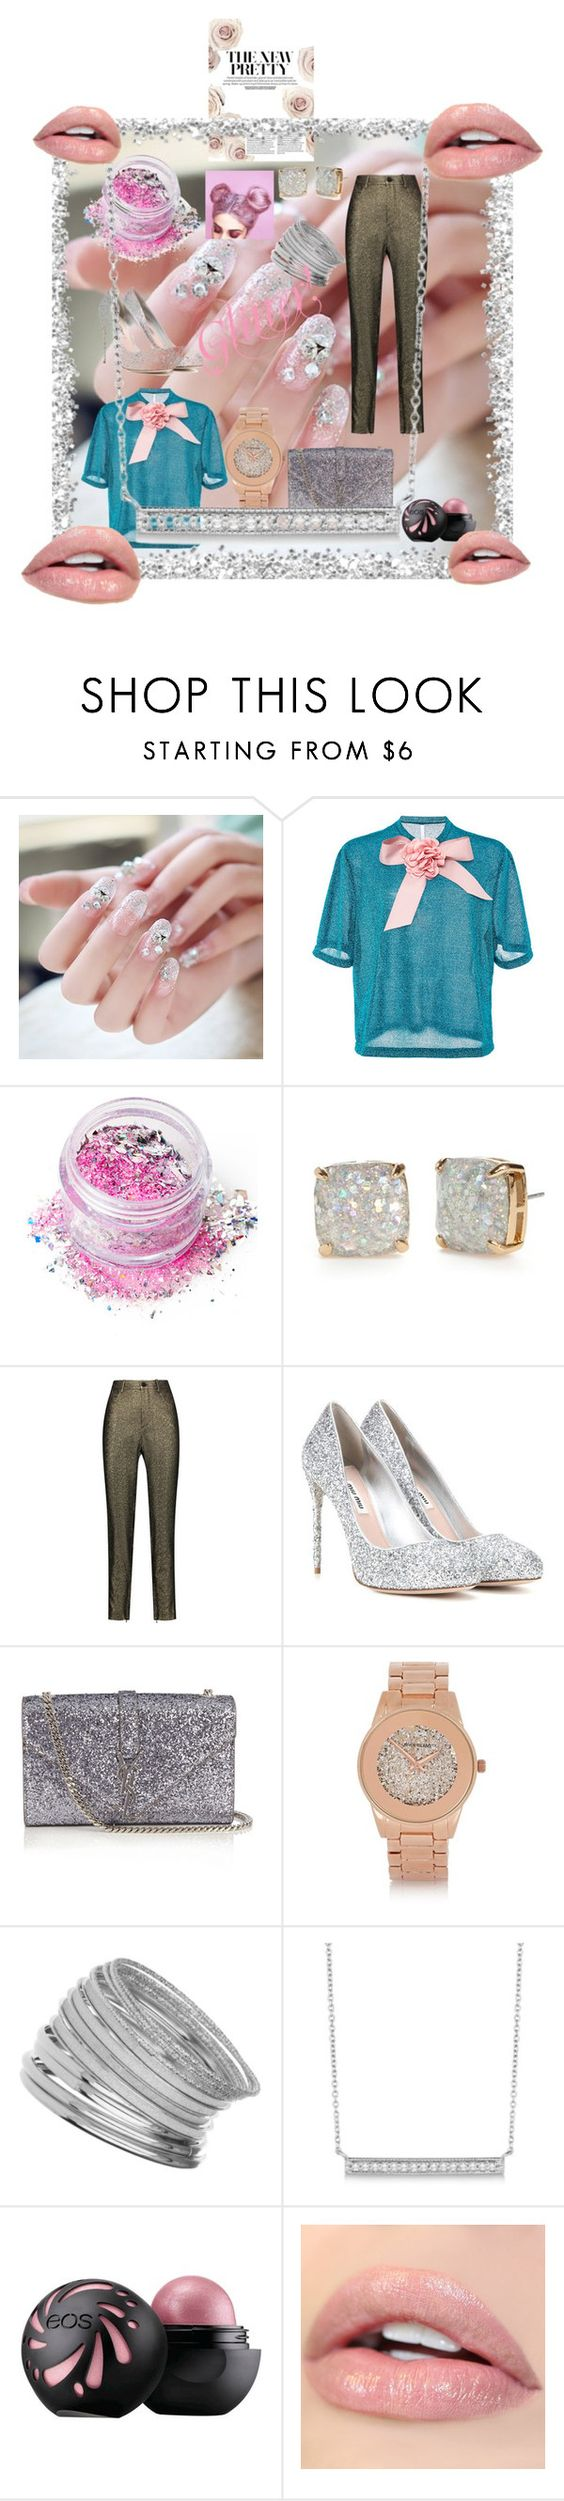 """All that Glitters may be Gold."" by bookworm-and-animefreak ❤ liked on Polyvore featuring beauty, Alcoolique, In Your Dreams, Kate Spade, Isabel Marant, Miu Miu, Yves Saint Laurent, River Island, Miss Selfridge and Allurez"